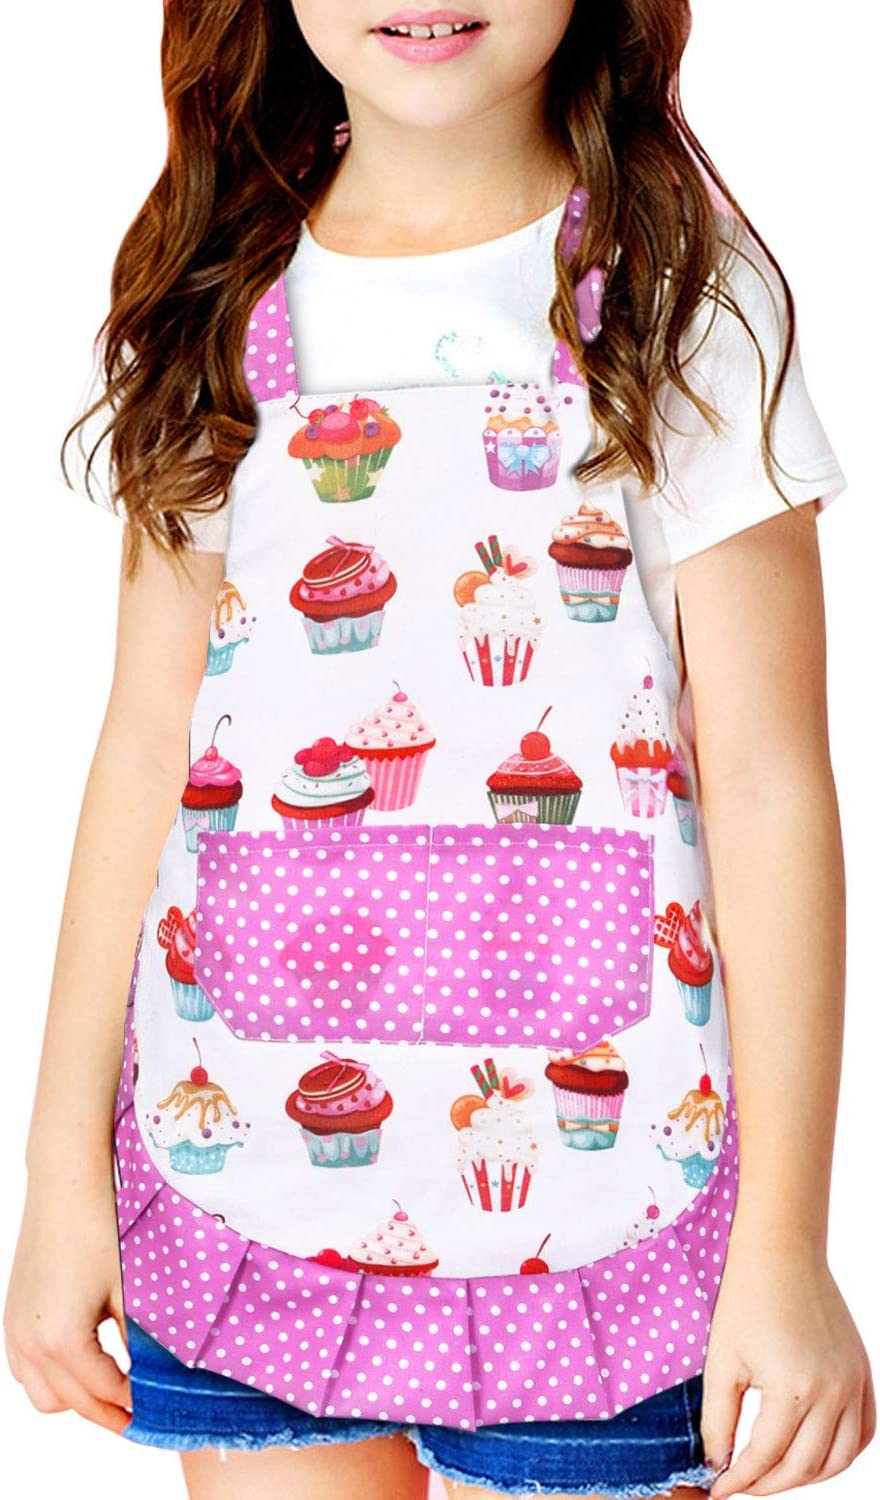 """Cute Cupcake Apron for Kids, Pink Kids Apron with Pockets, Little Girl Apron with Adjustable Neck Ties, Waterproof Children Apron for Girls, Boys, Baking Cooking, Playing, Crafting (14.6"""" x 16.7"""")"""